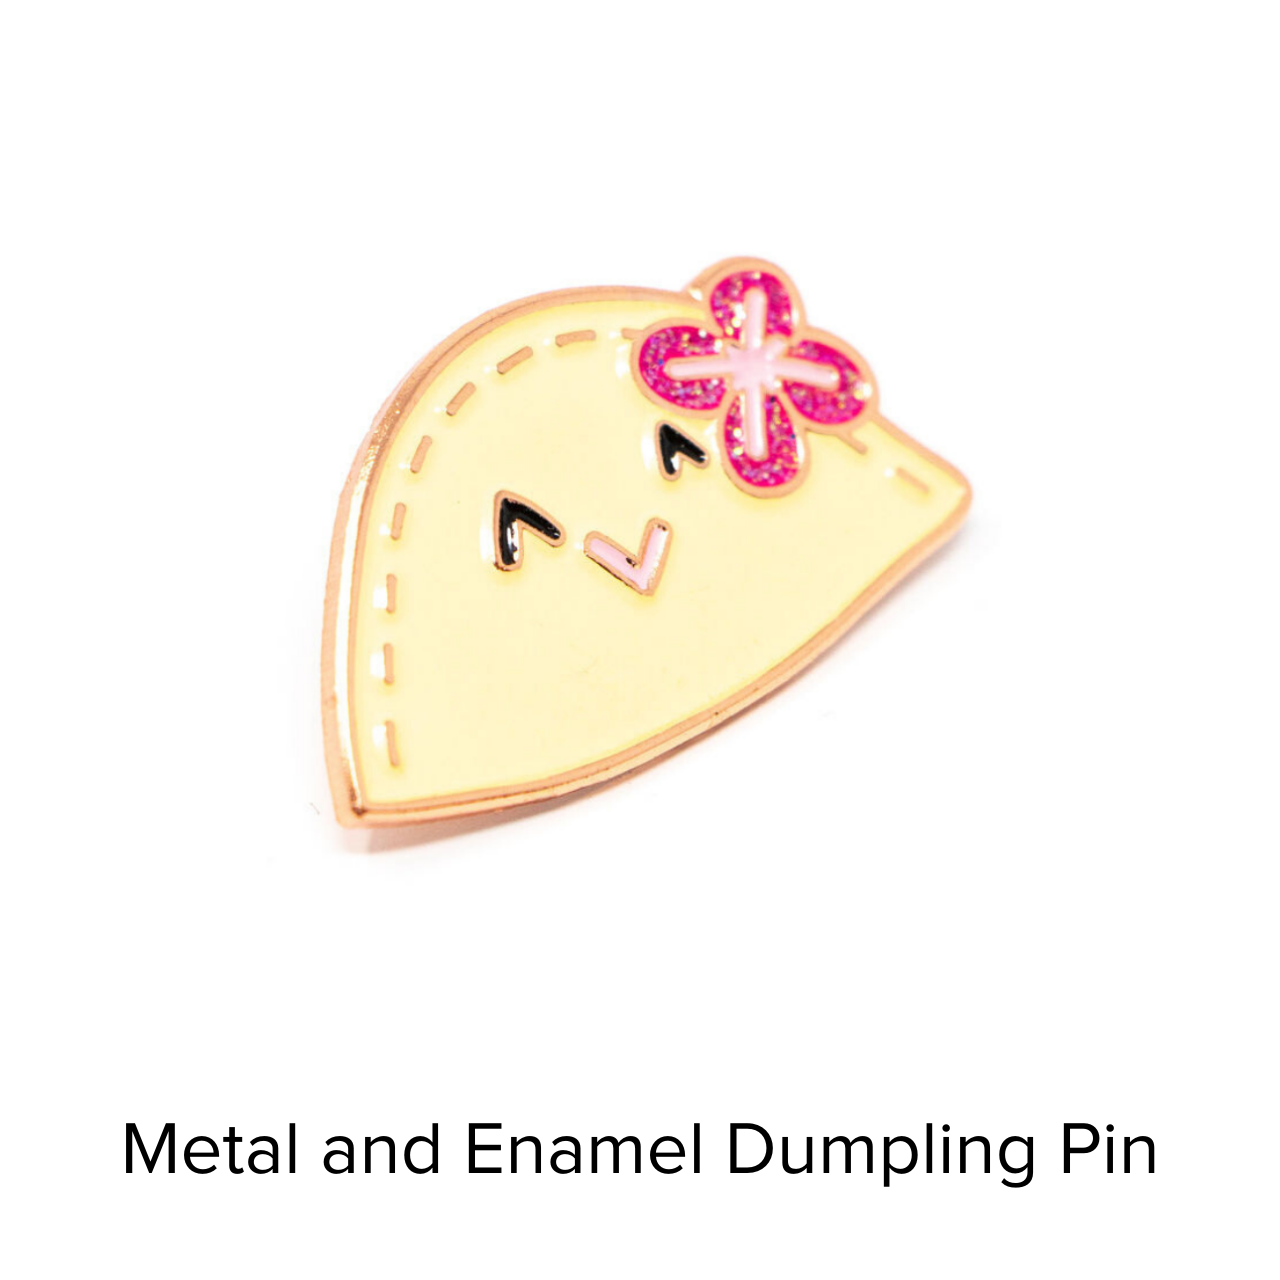 Catshy Crafts Enamel Dumpling Pin